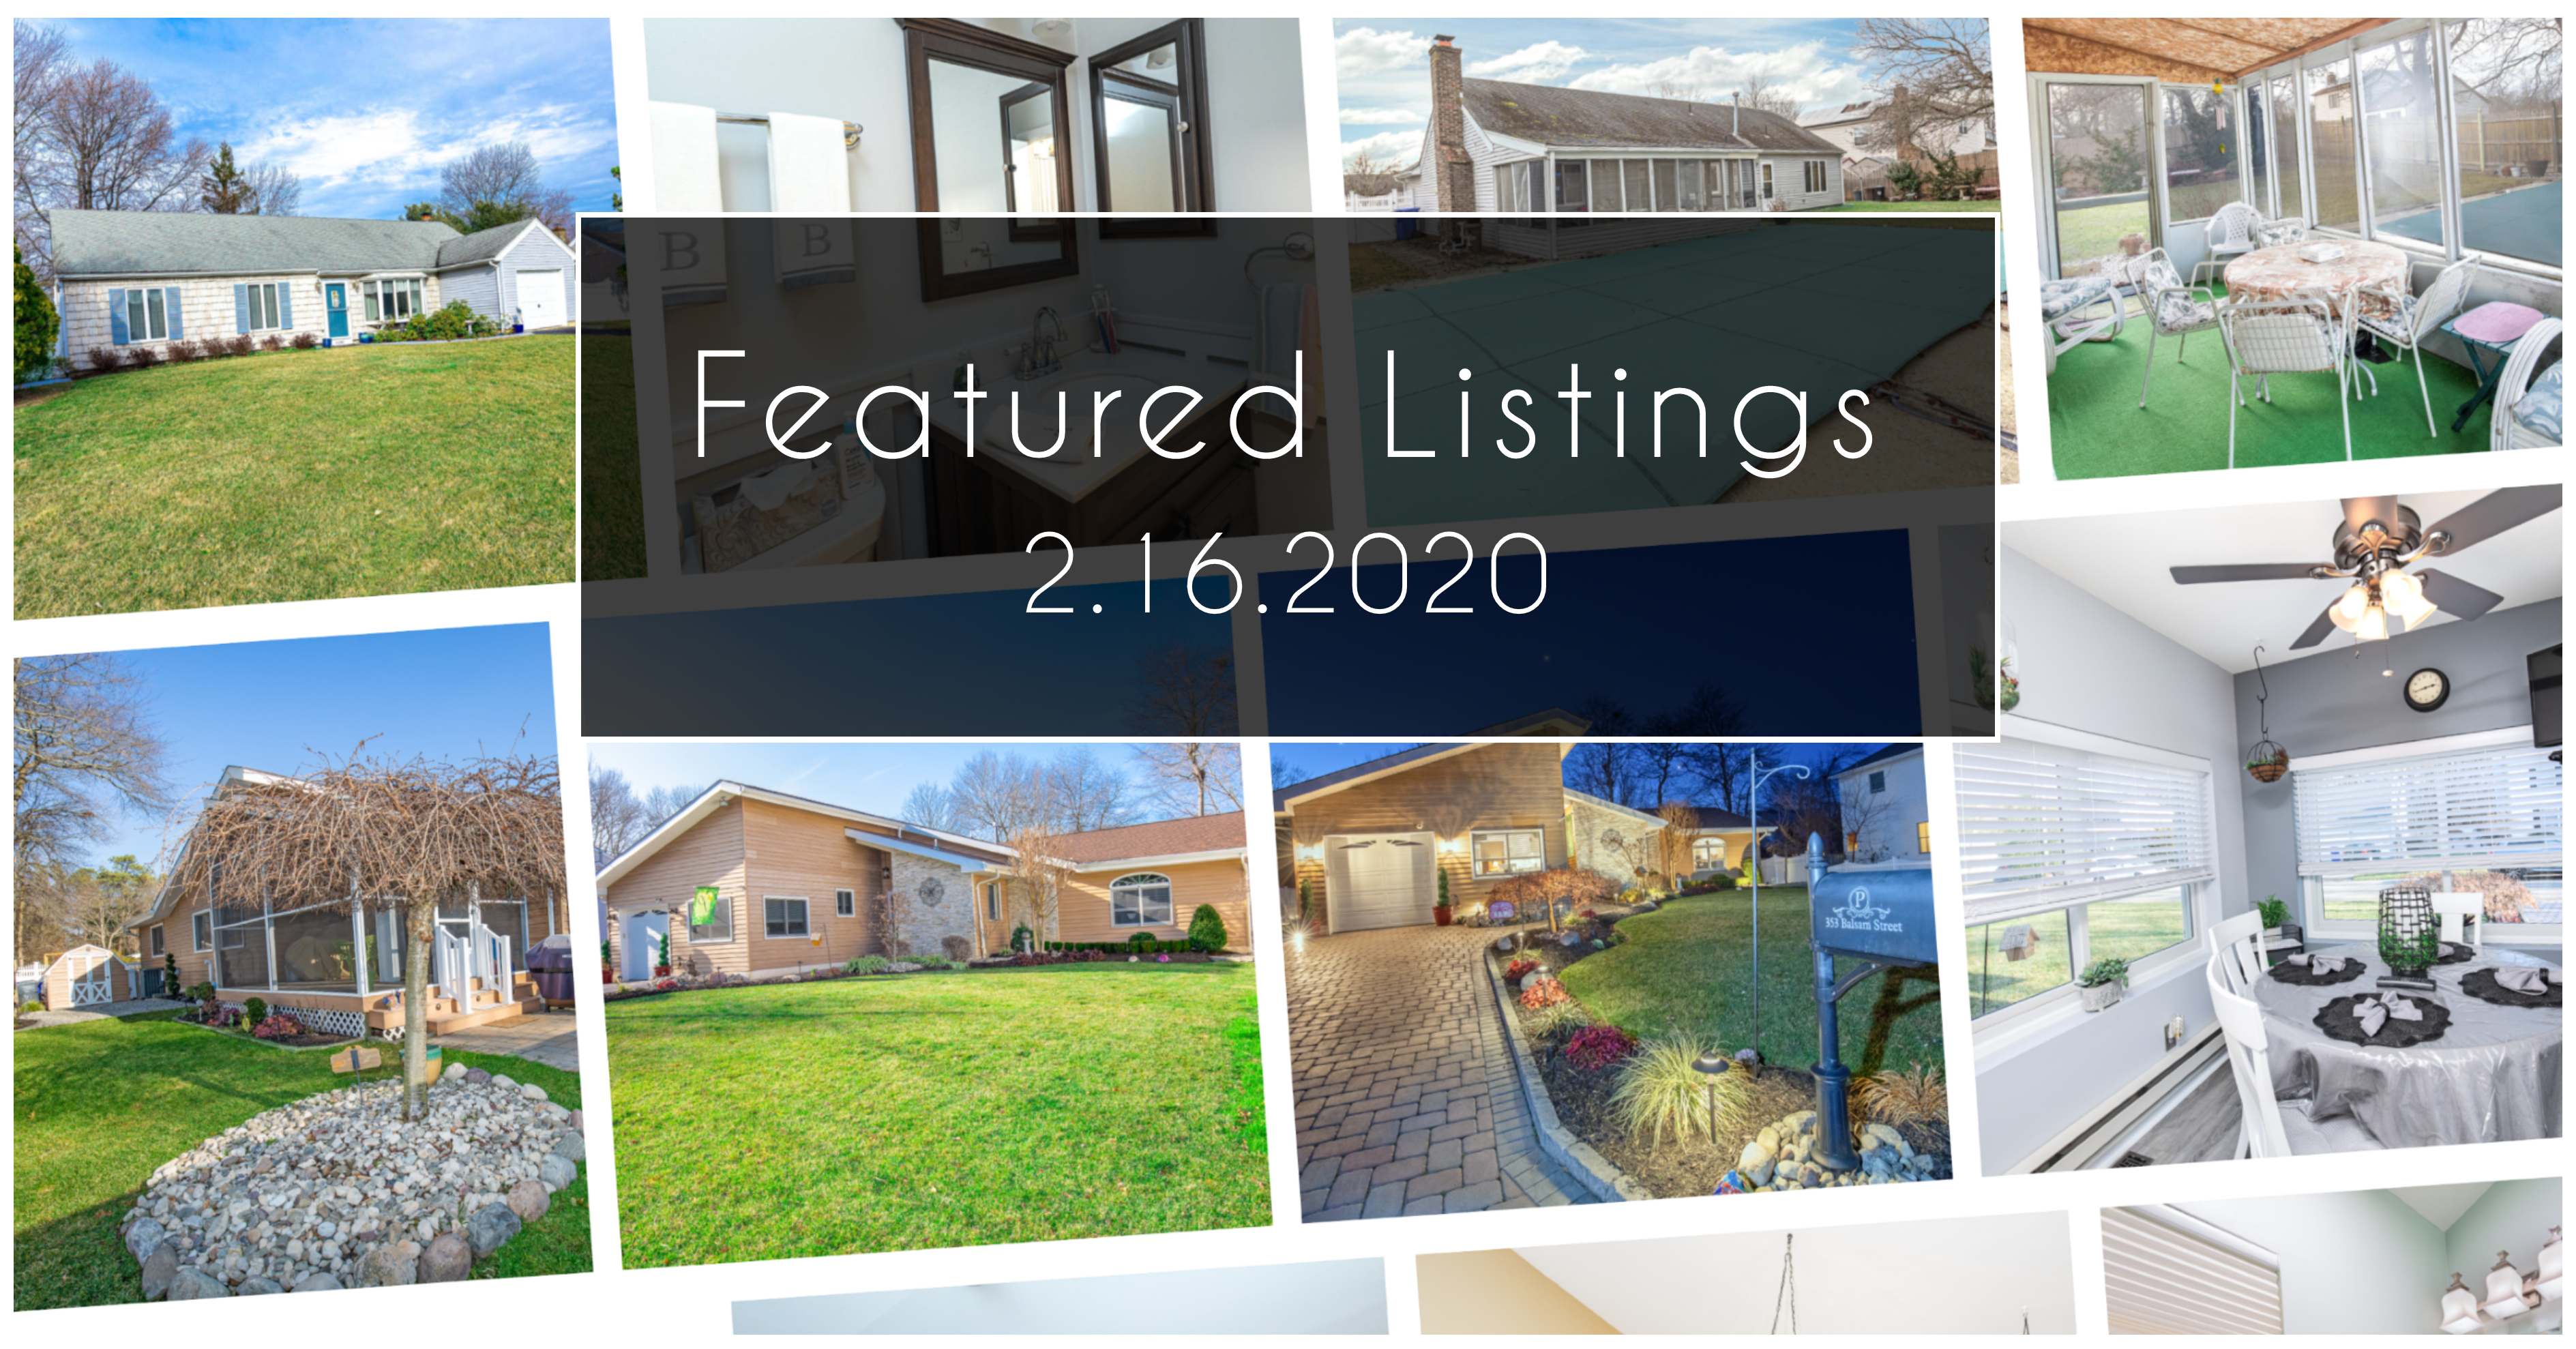 Featured Listings Feb 16 2020